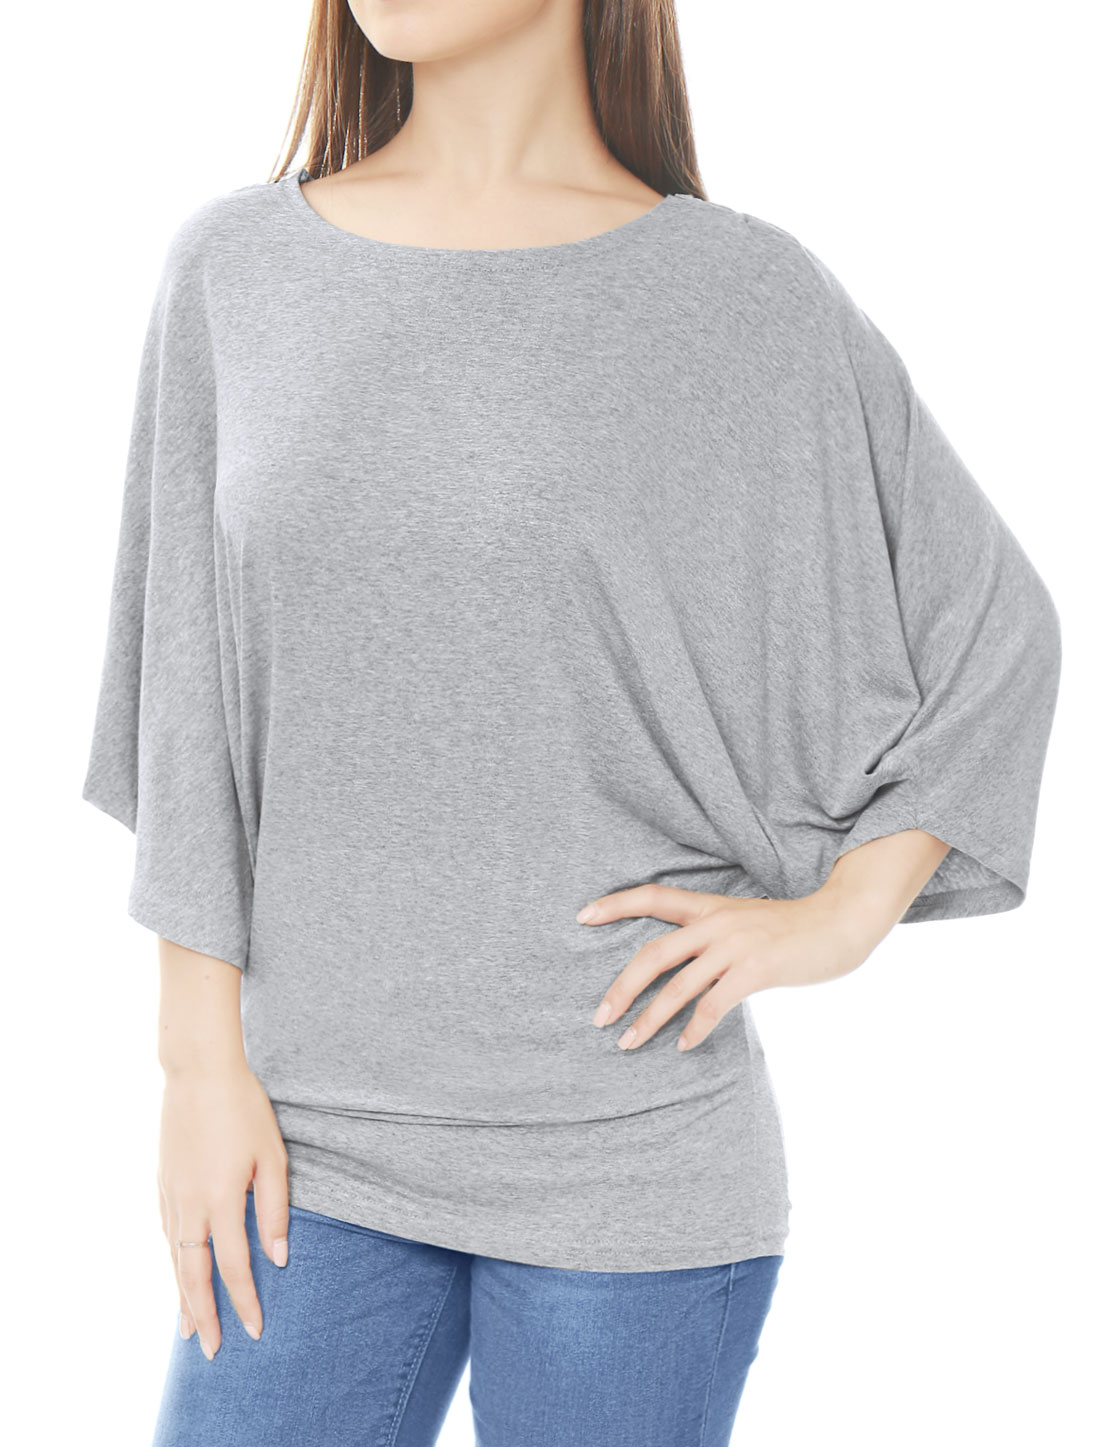 Women Boat Neck Batwing Sleeves Oversized Tunic Top Gray S